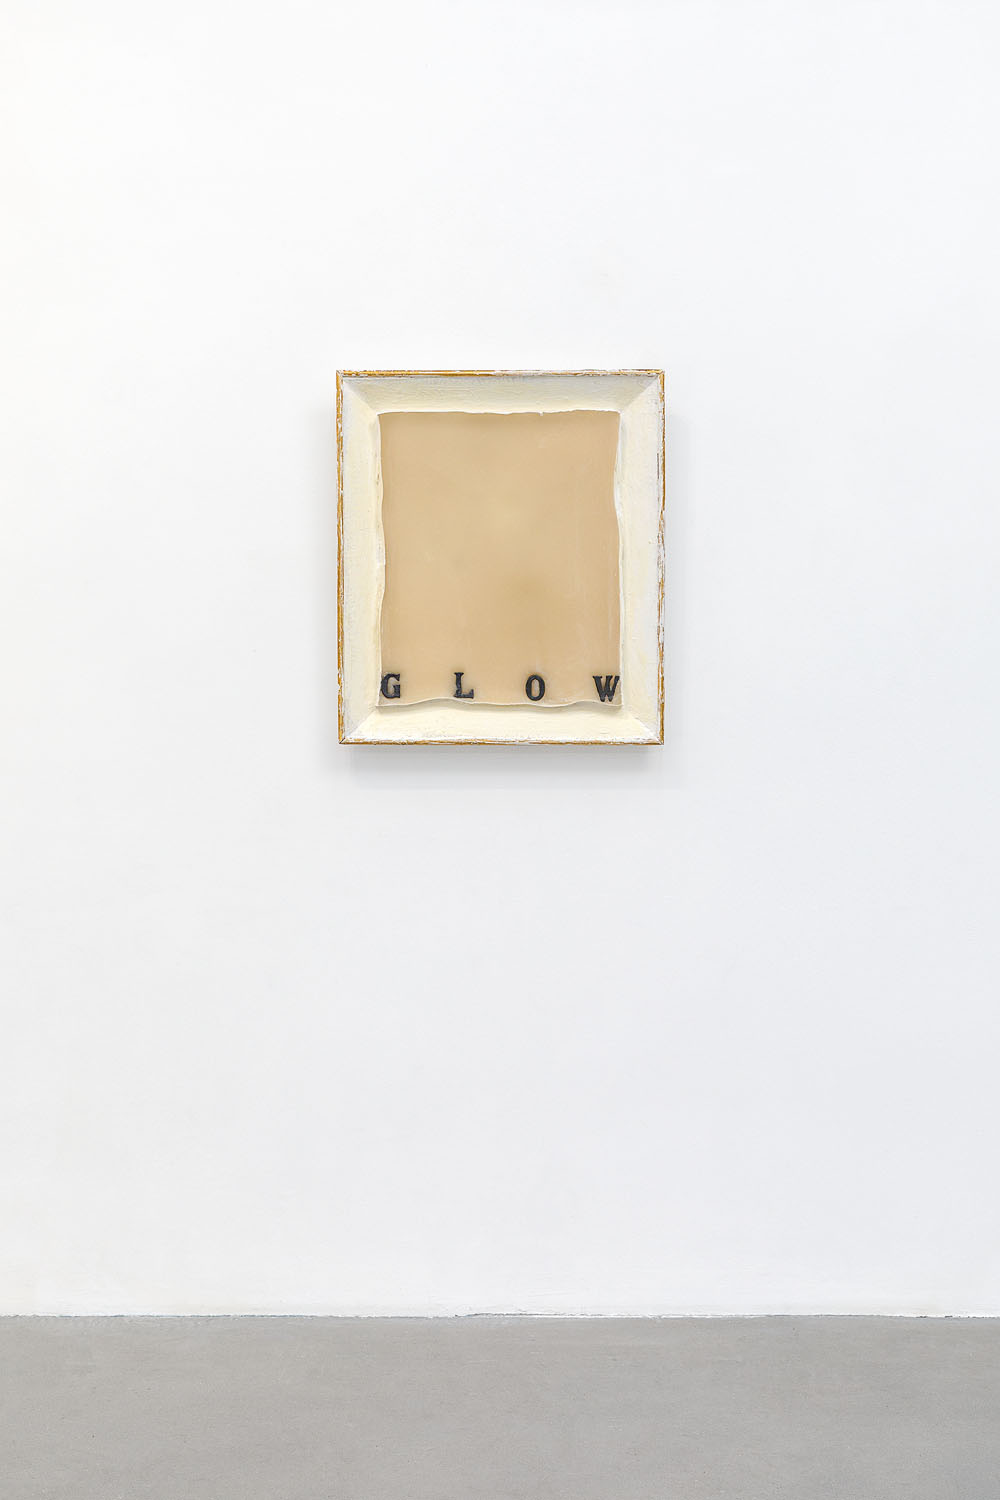 GLOW, 2018  Wax, vintage frame, lead word 70 x 60 cm  Courtesy the artist and Rabouan Moussion Gallery Photo Credit : Romain Darnaud